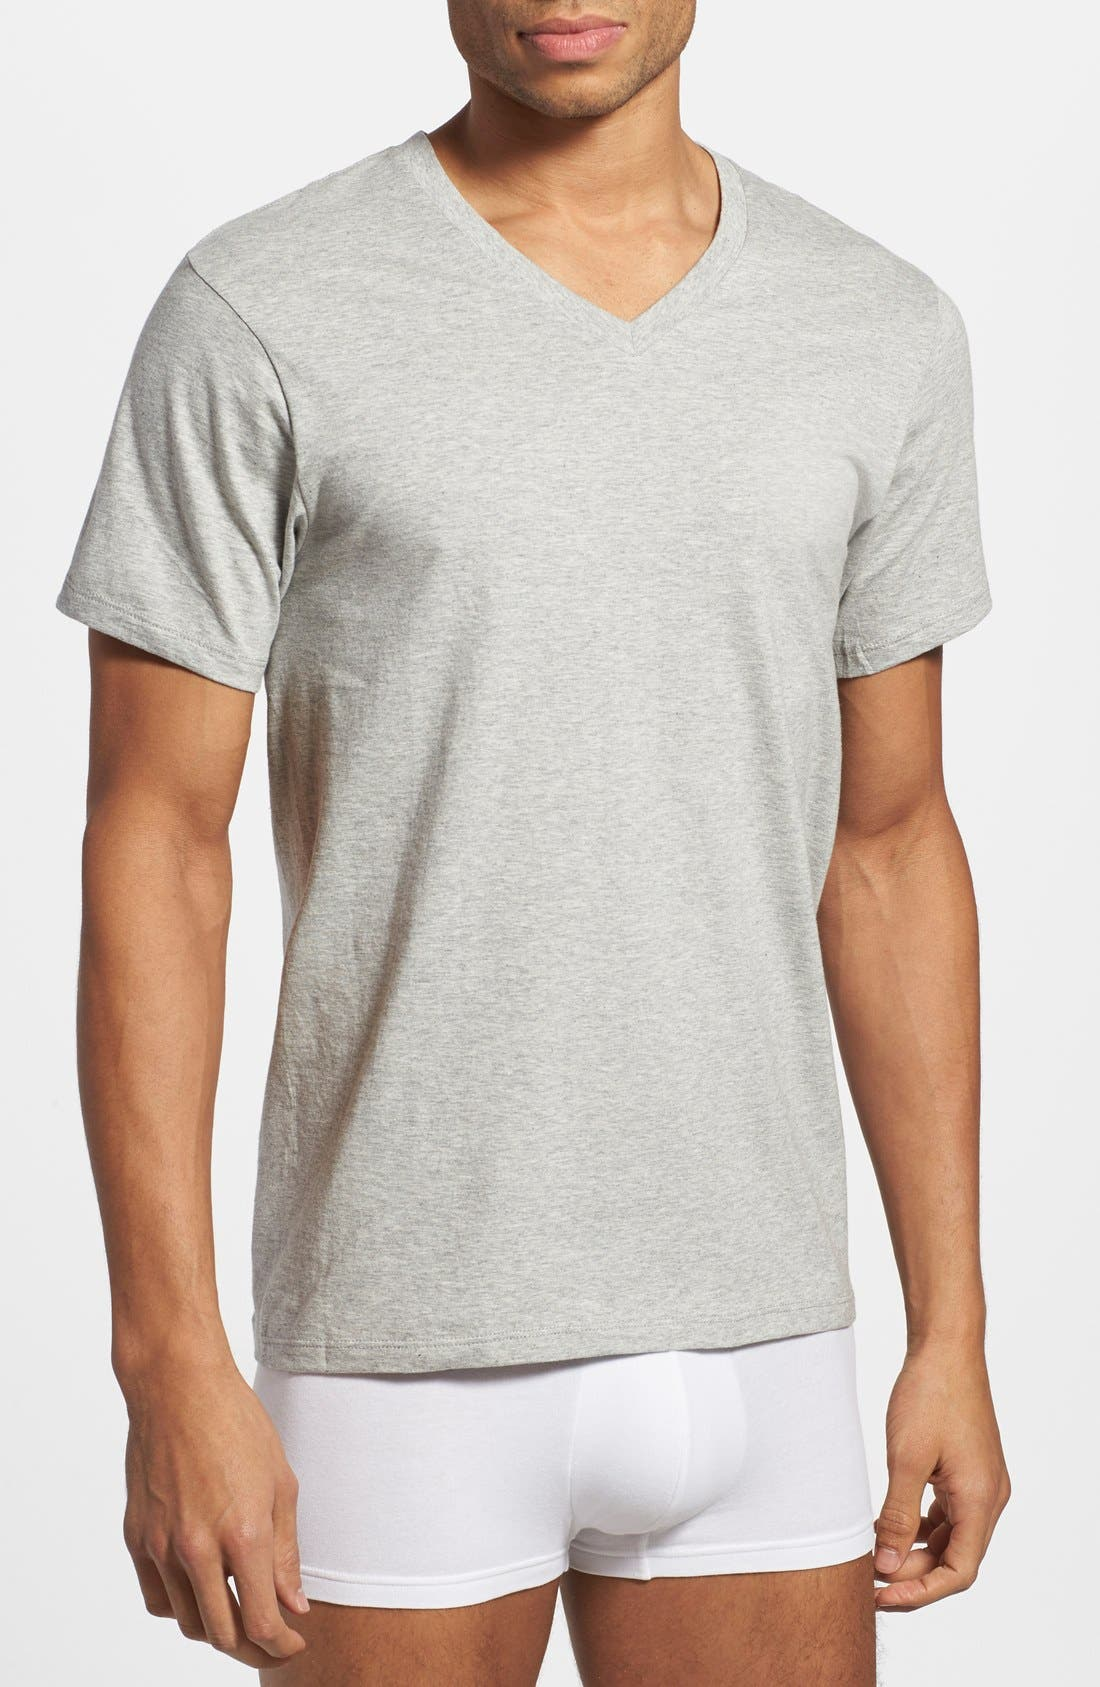 Alternate Image 2  - Calvin Klein Assorted 3-Pack Classic Fit Cotton V-Neck T-Shirt